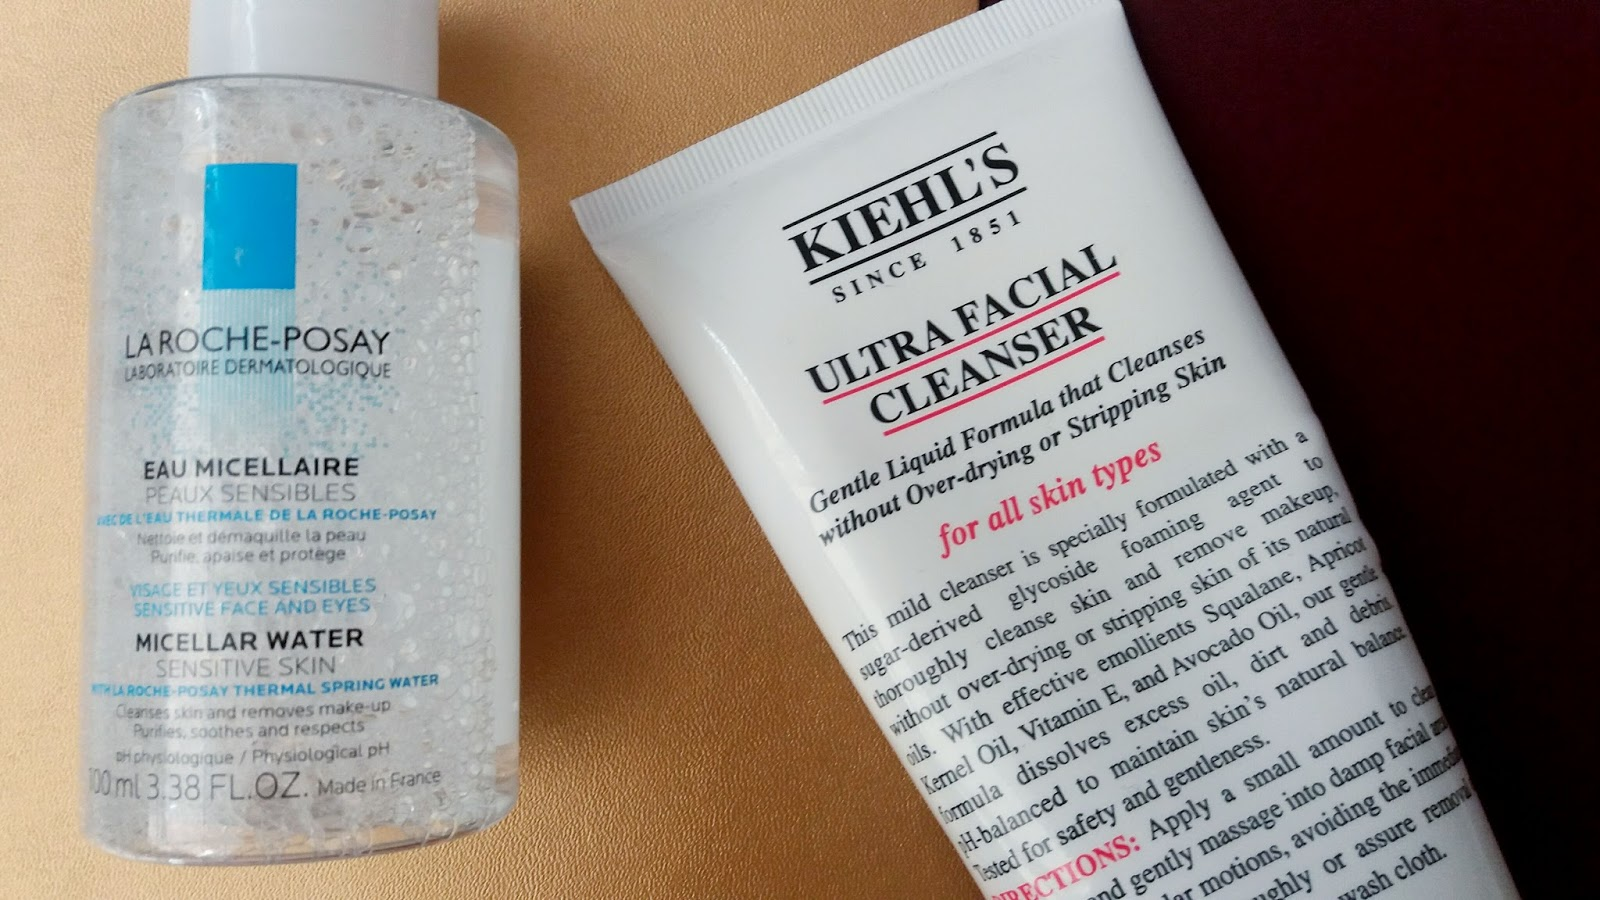 La Roche Posay Micellar Water and Kiehl's Ultra Facial Cleanser